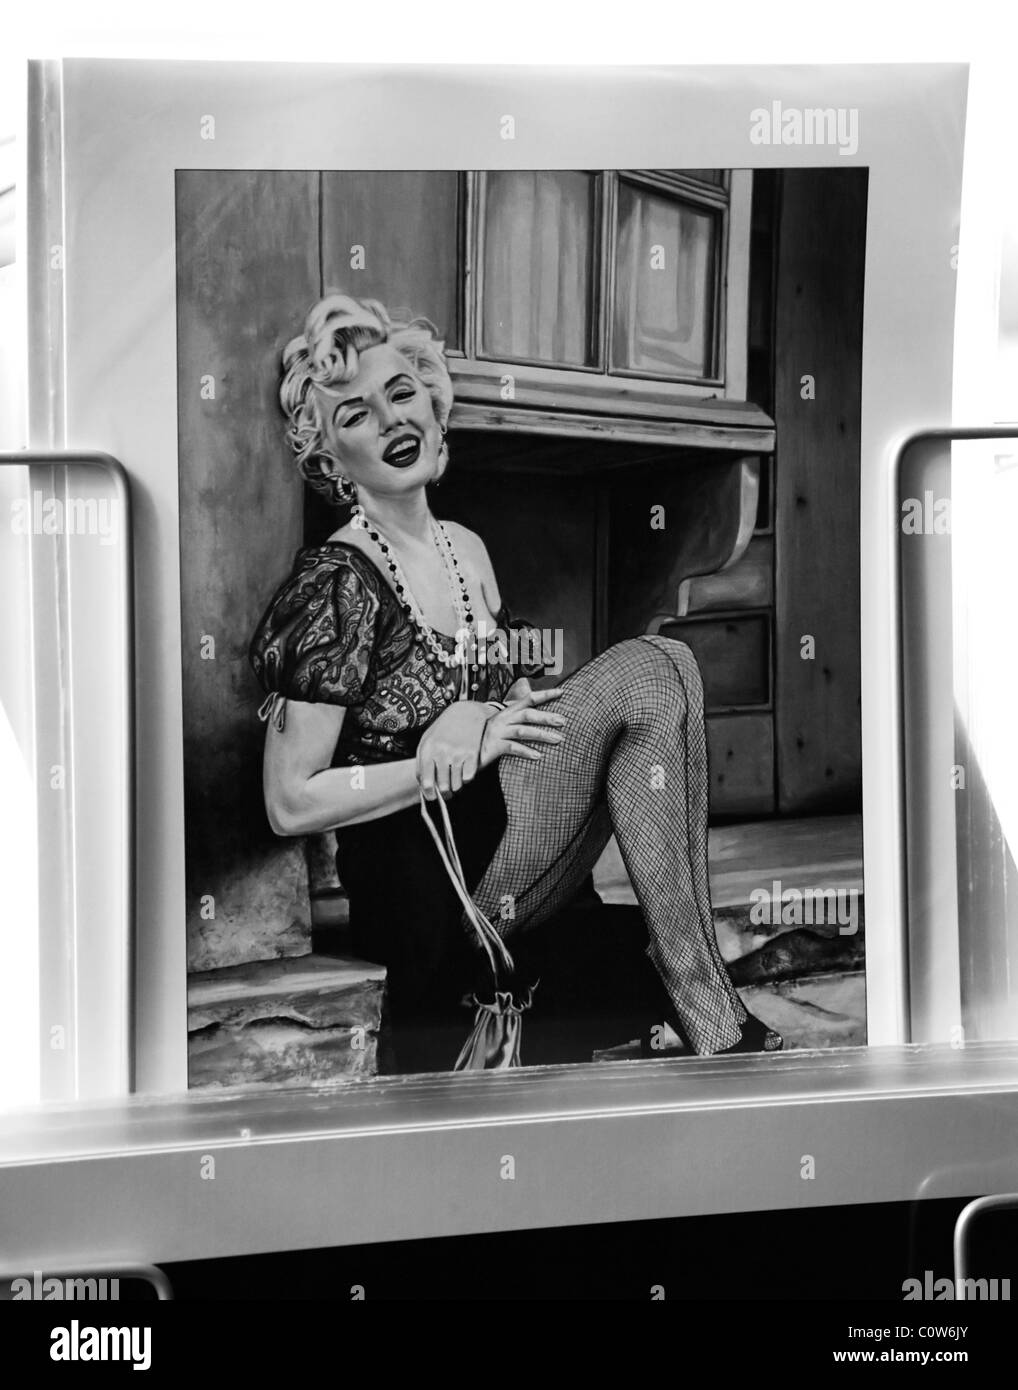 Rome, Italy, Marilyn Monroe print for sale at piazza Navona Christmas street market - Stock Image